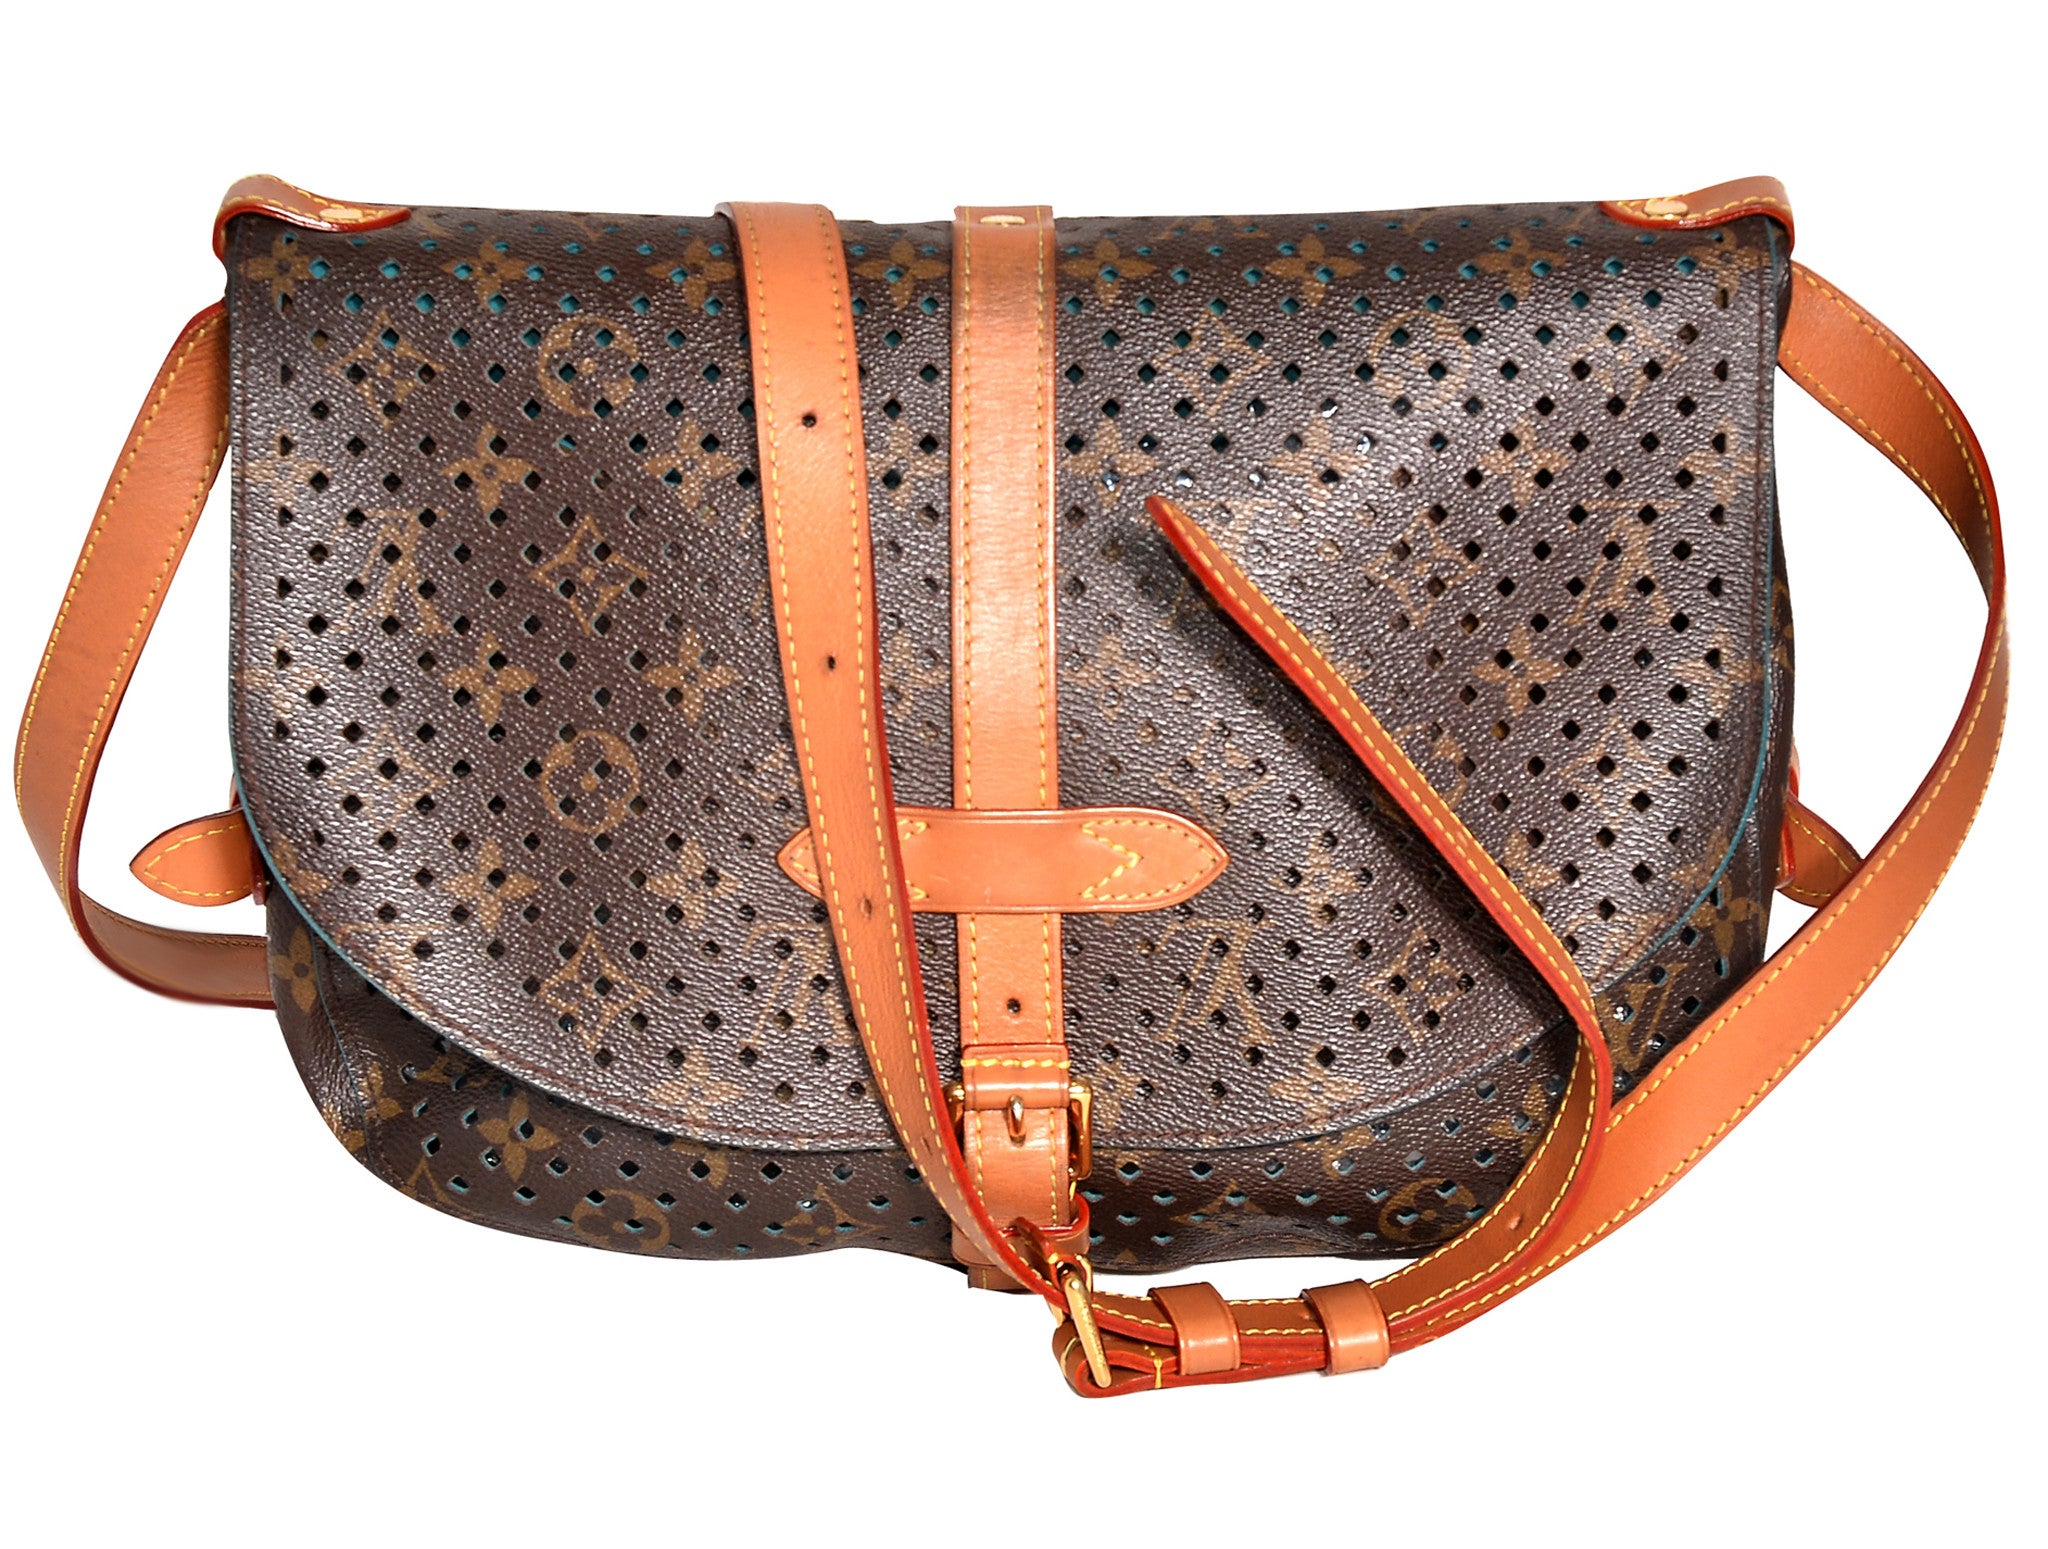 MONOGRAM PERFORATED LEATHER BAG